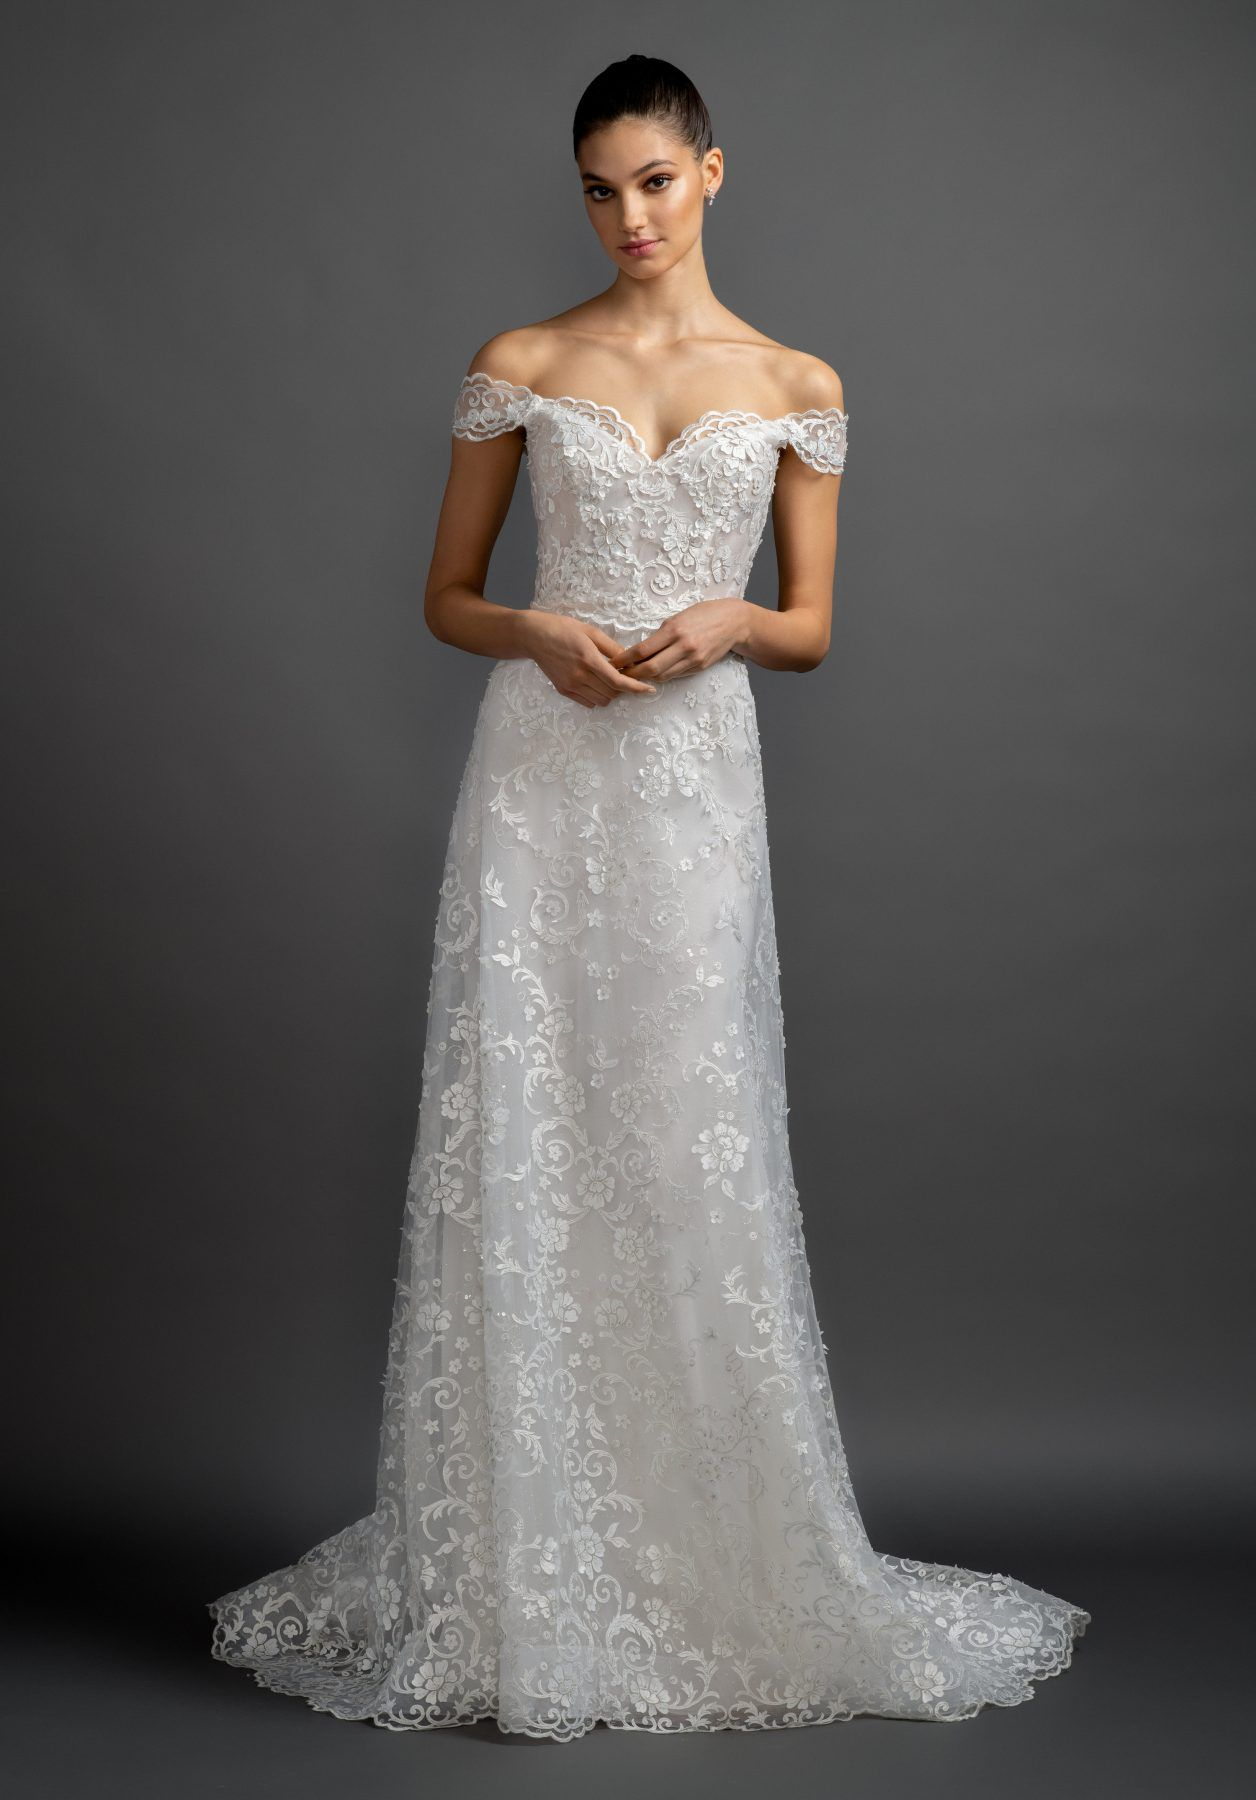 18+ Off the shoulder lace a line wedding dress ideas in 2021